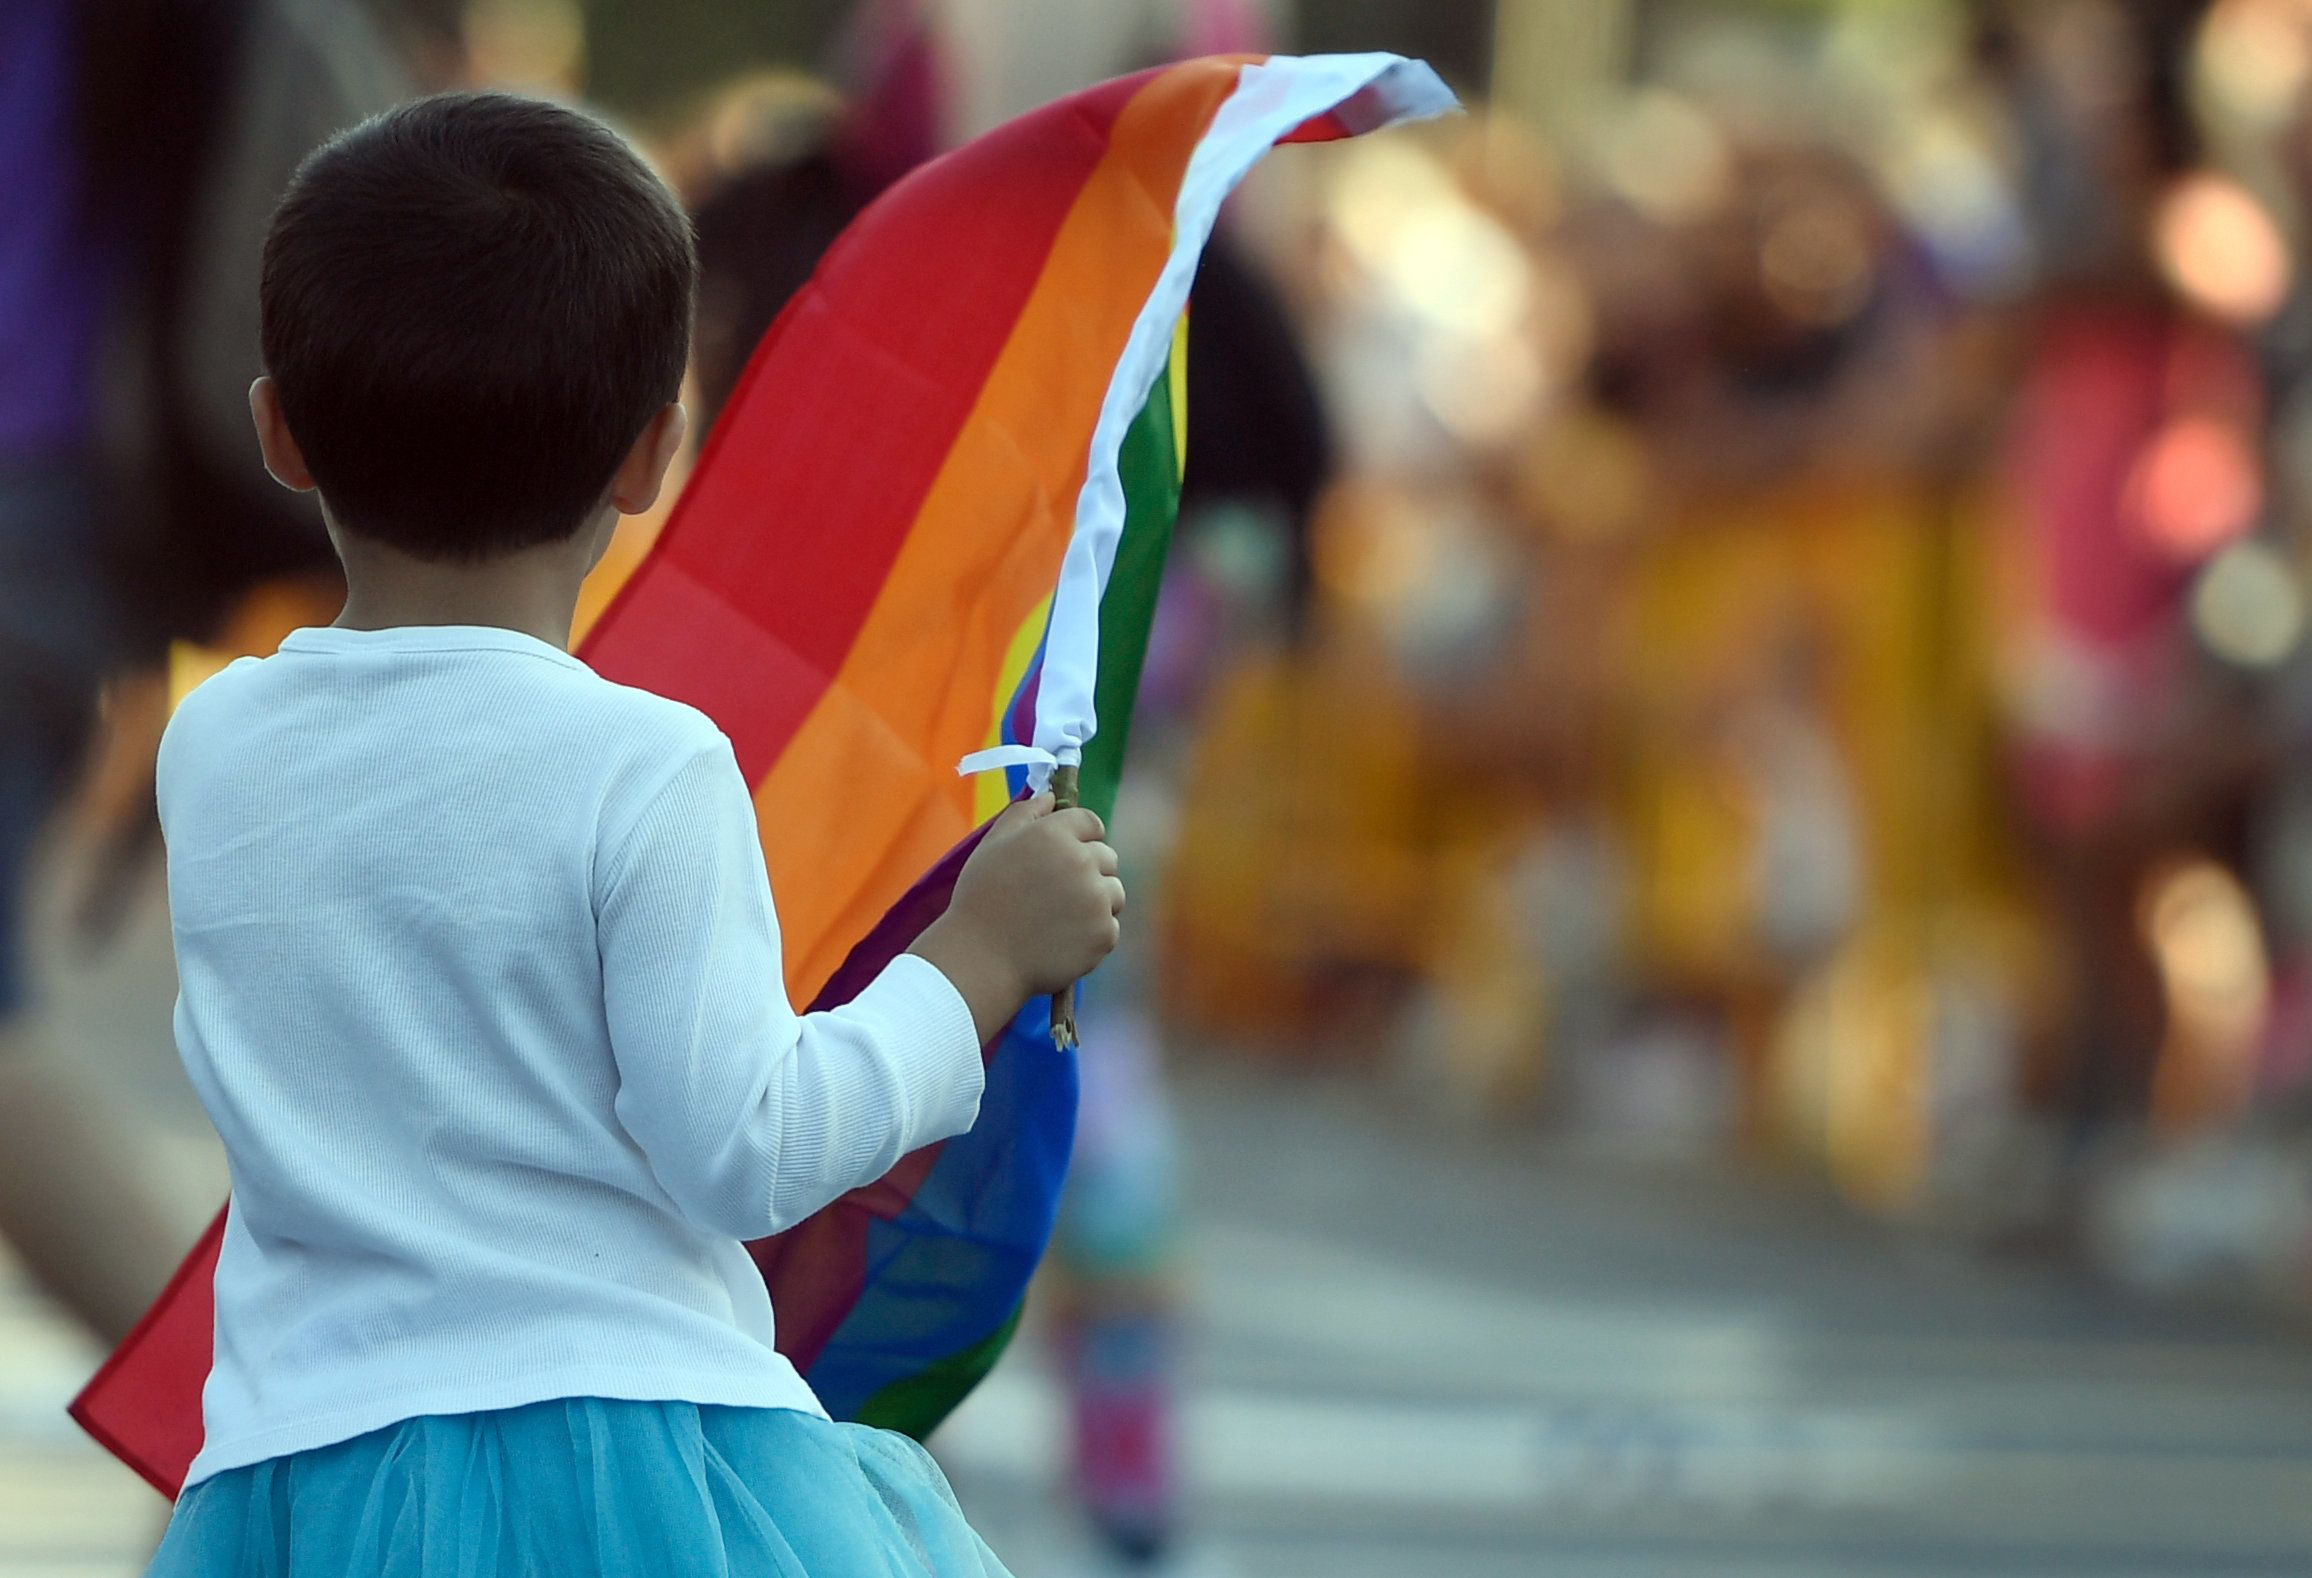 A child waves a rainbow flag during the WorldPride 2017 parade in Madrid on July 1, 2017. Revellers took to the rainbow streets of Madrid today in the world's biggest march for gay, lesbian, bisexual and transgender rights. Carried along by the slogan 'Viva la vida!' (Live life!), the parade of 52 floats started partying its way through the centre later afternoon in celebration of sexual diversity, under high security.    / AFP PHOTO / CURTO DE LA TORRE        (Photo credit should read CURTO DE LA TORRE/AFP/Getty Images)